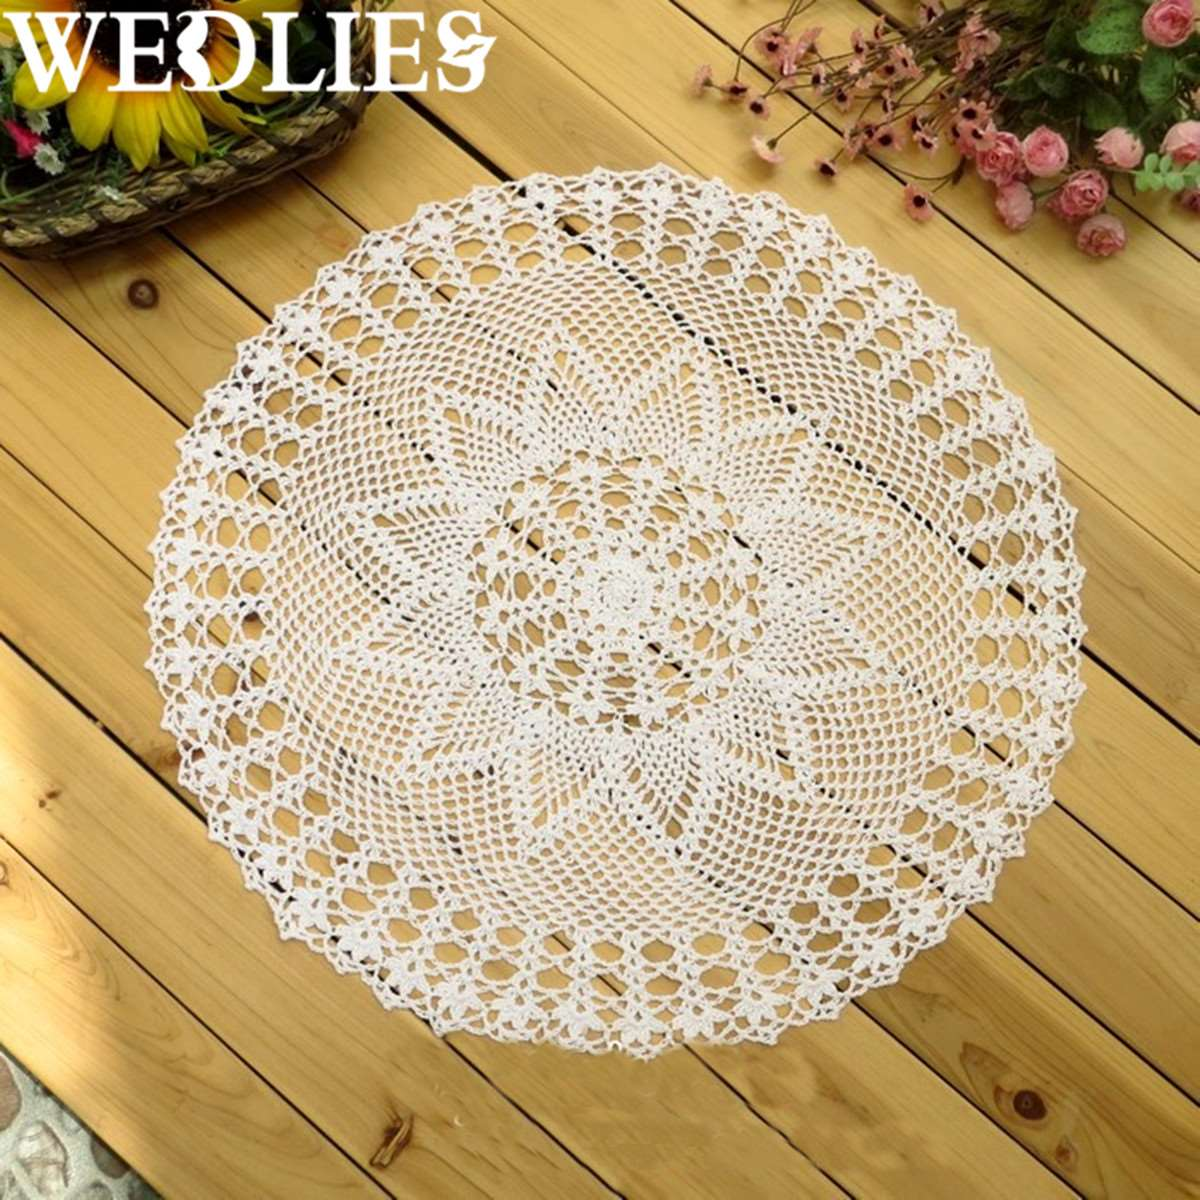 Vintage Cotton Round Hand Crocheted Lace Doily Placemat Mat Home ...